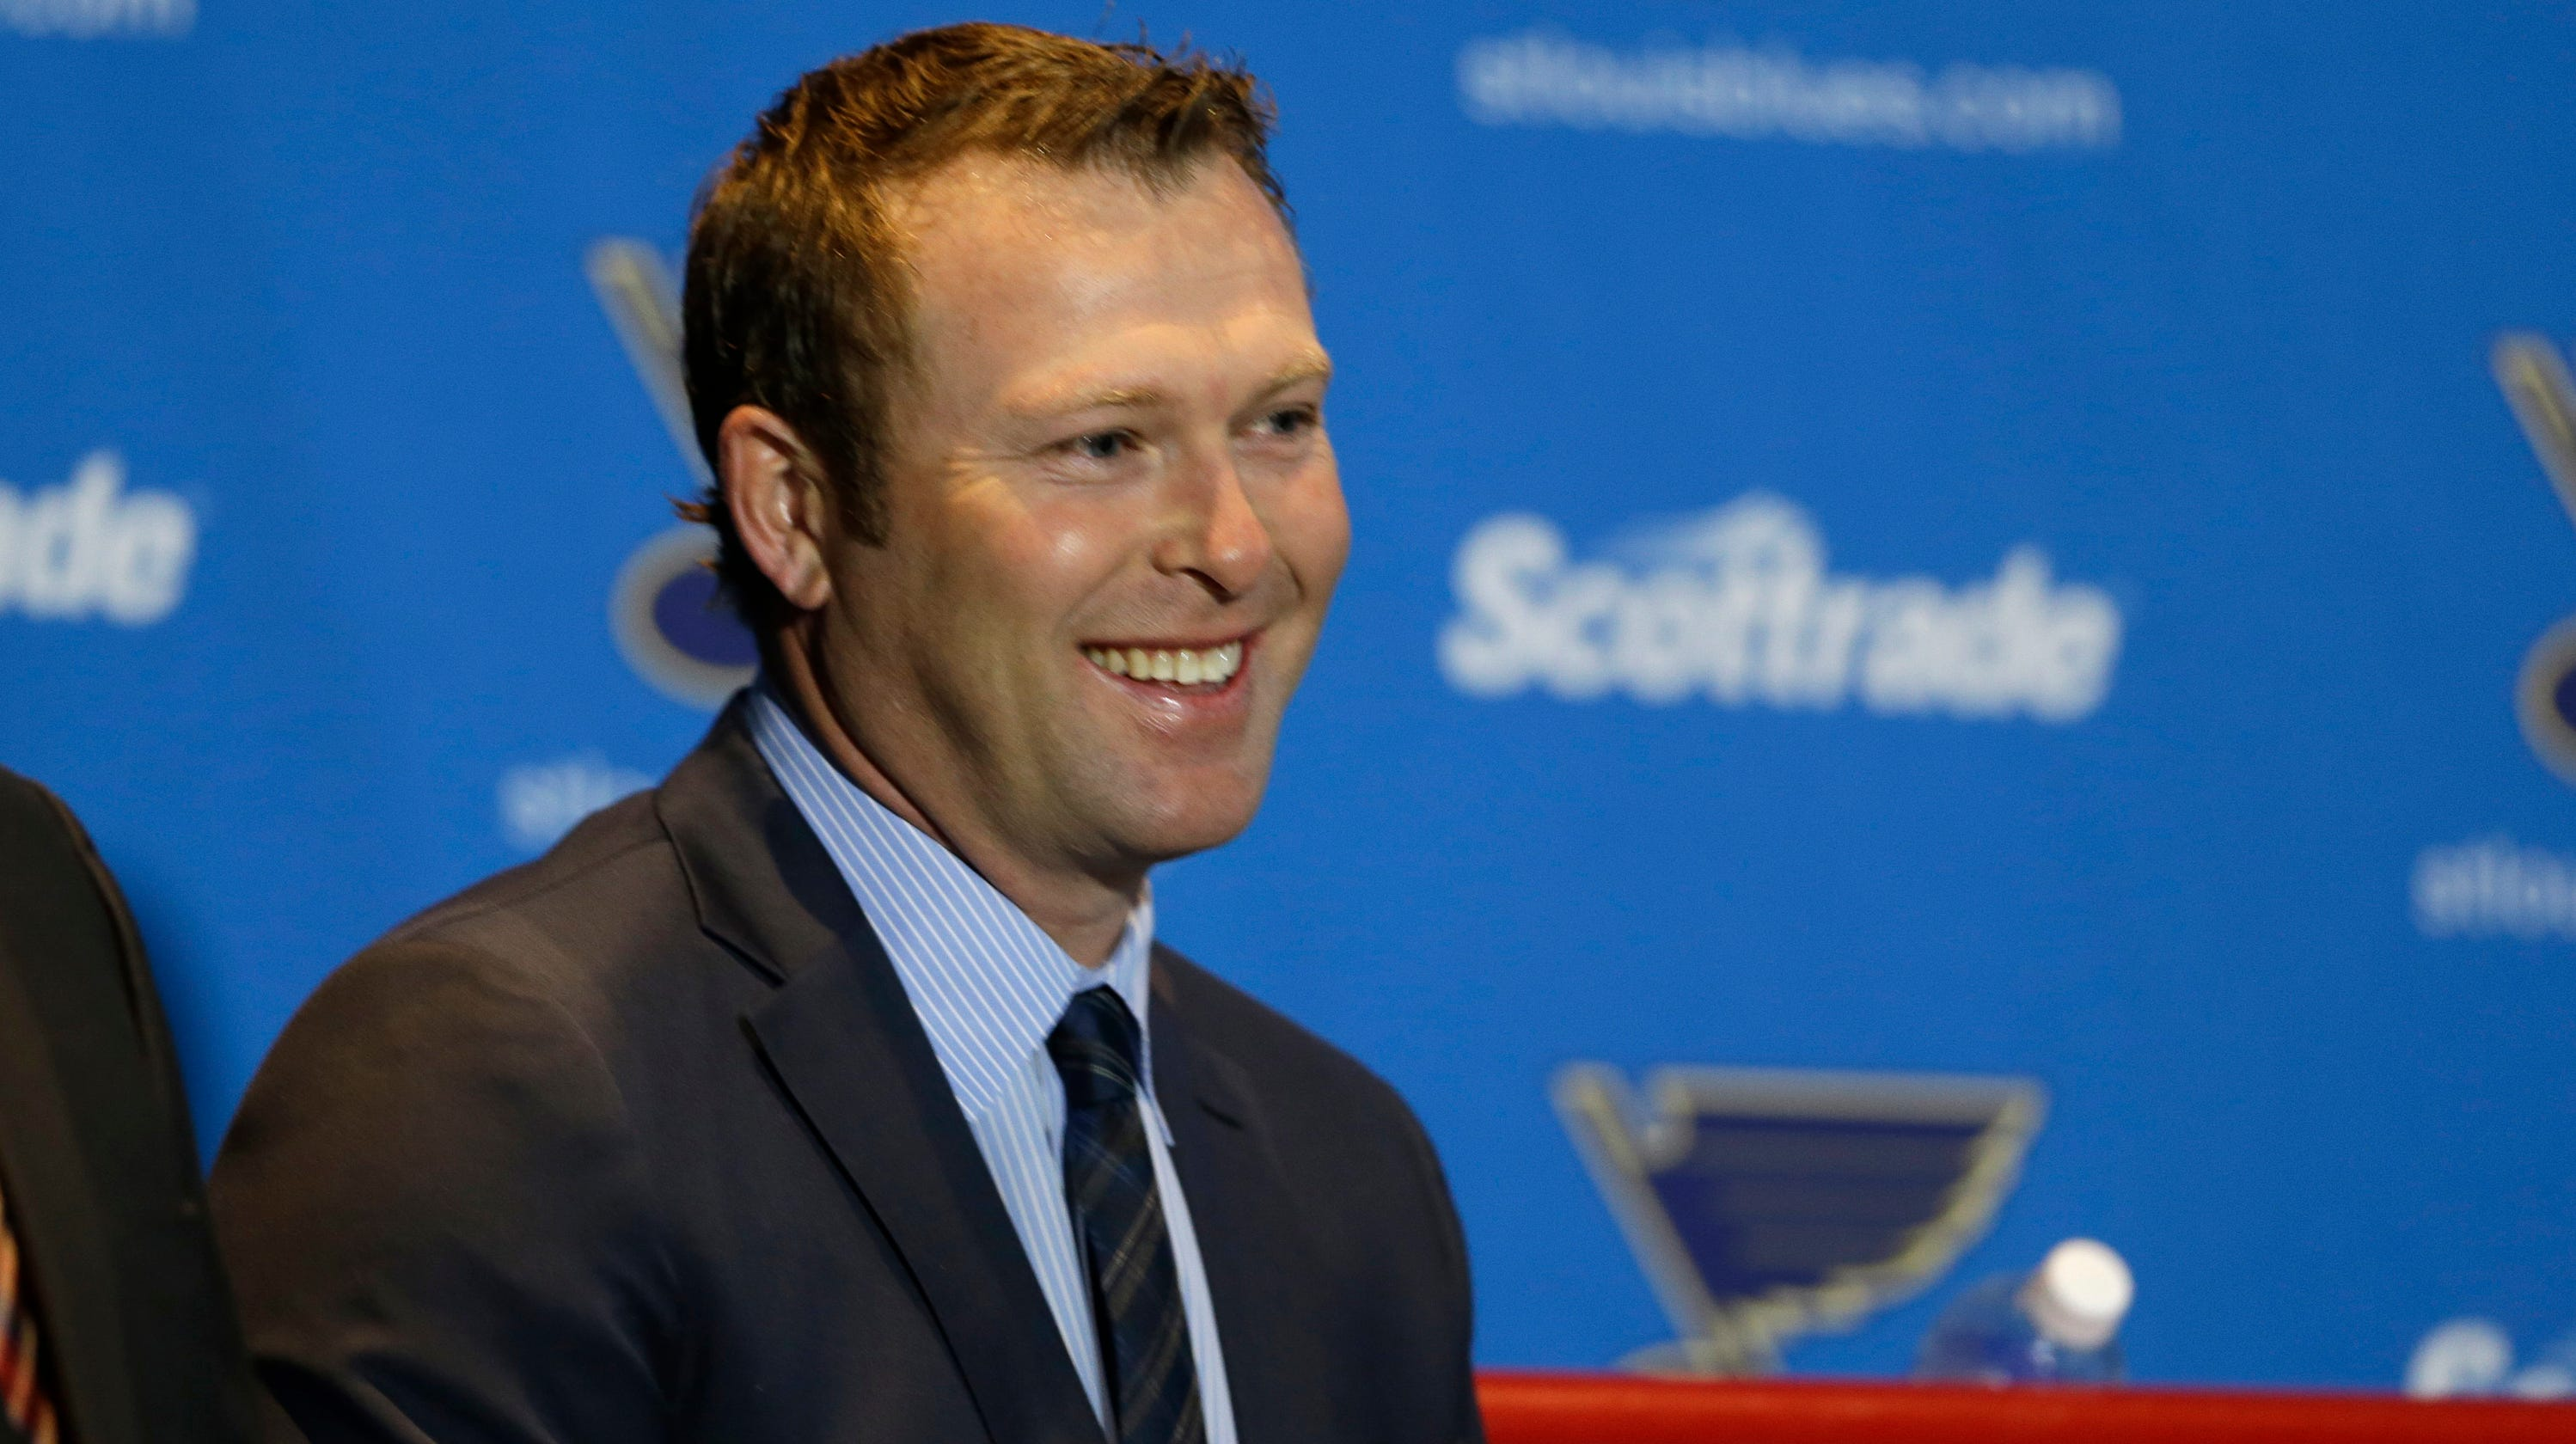 Could Be Martin Brodeur Come Back To The Nj Devils